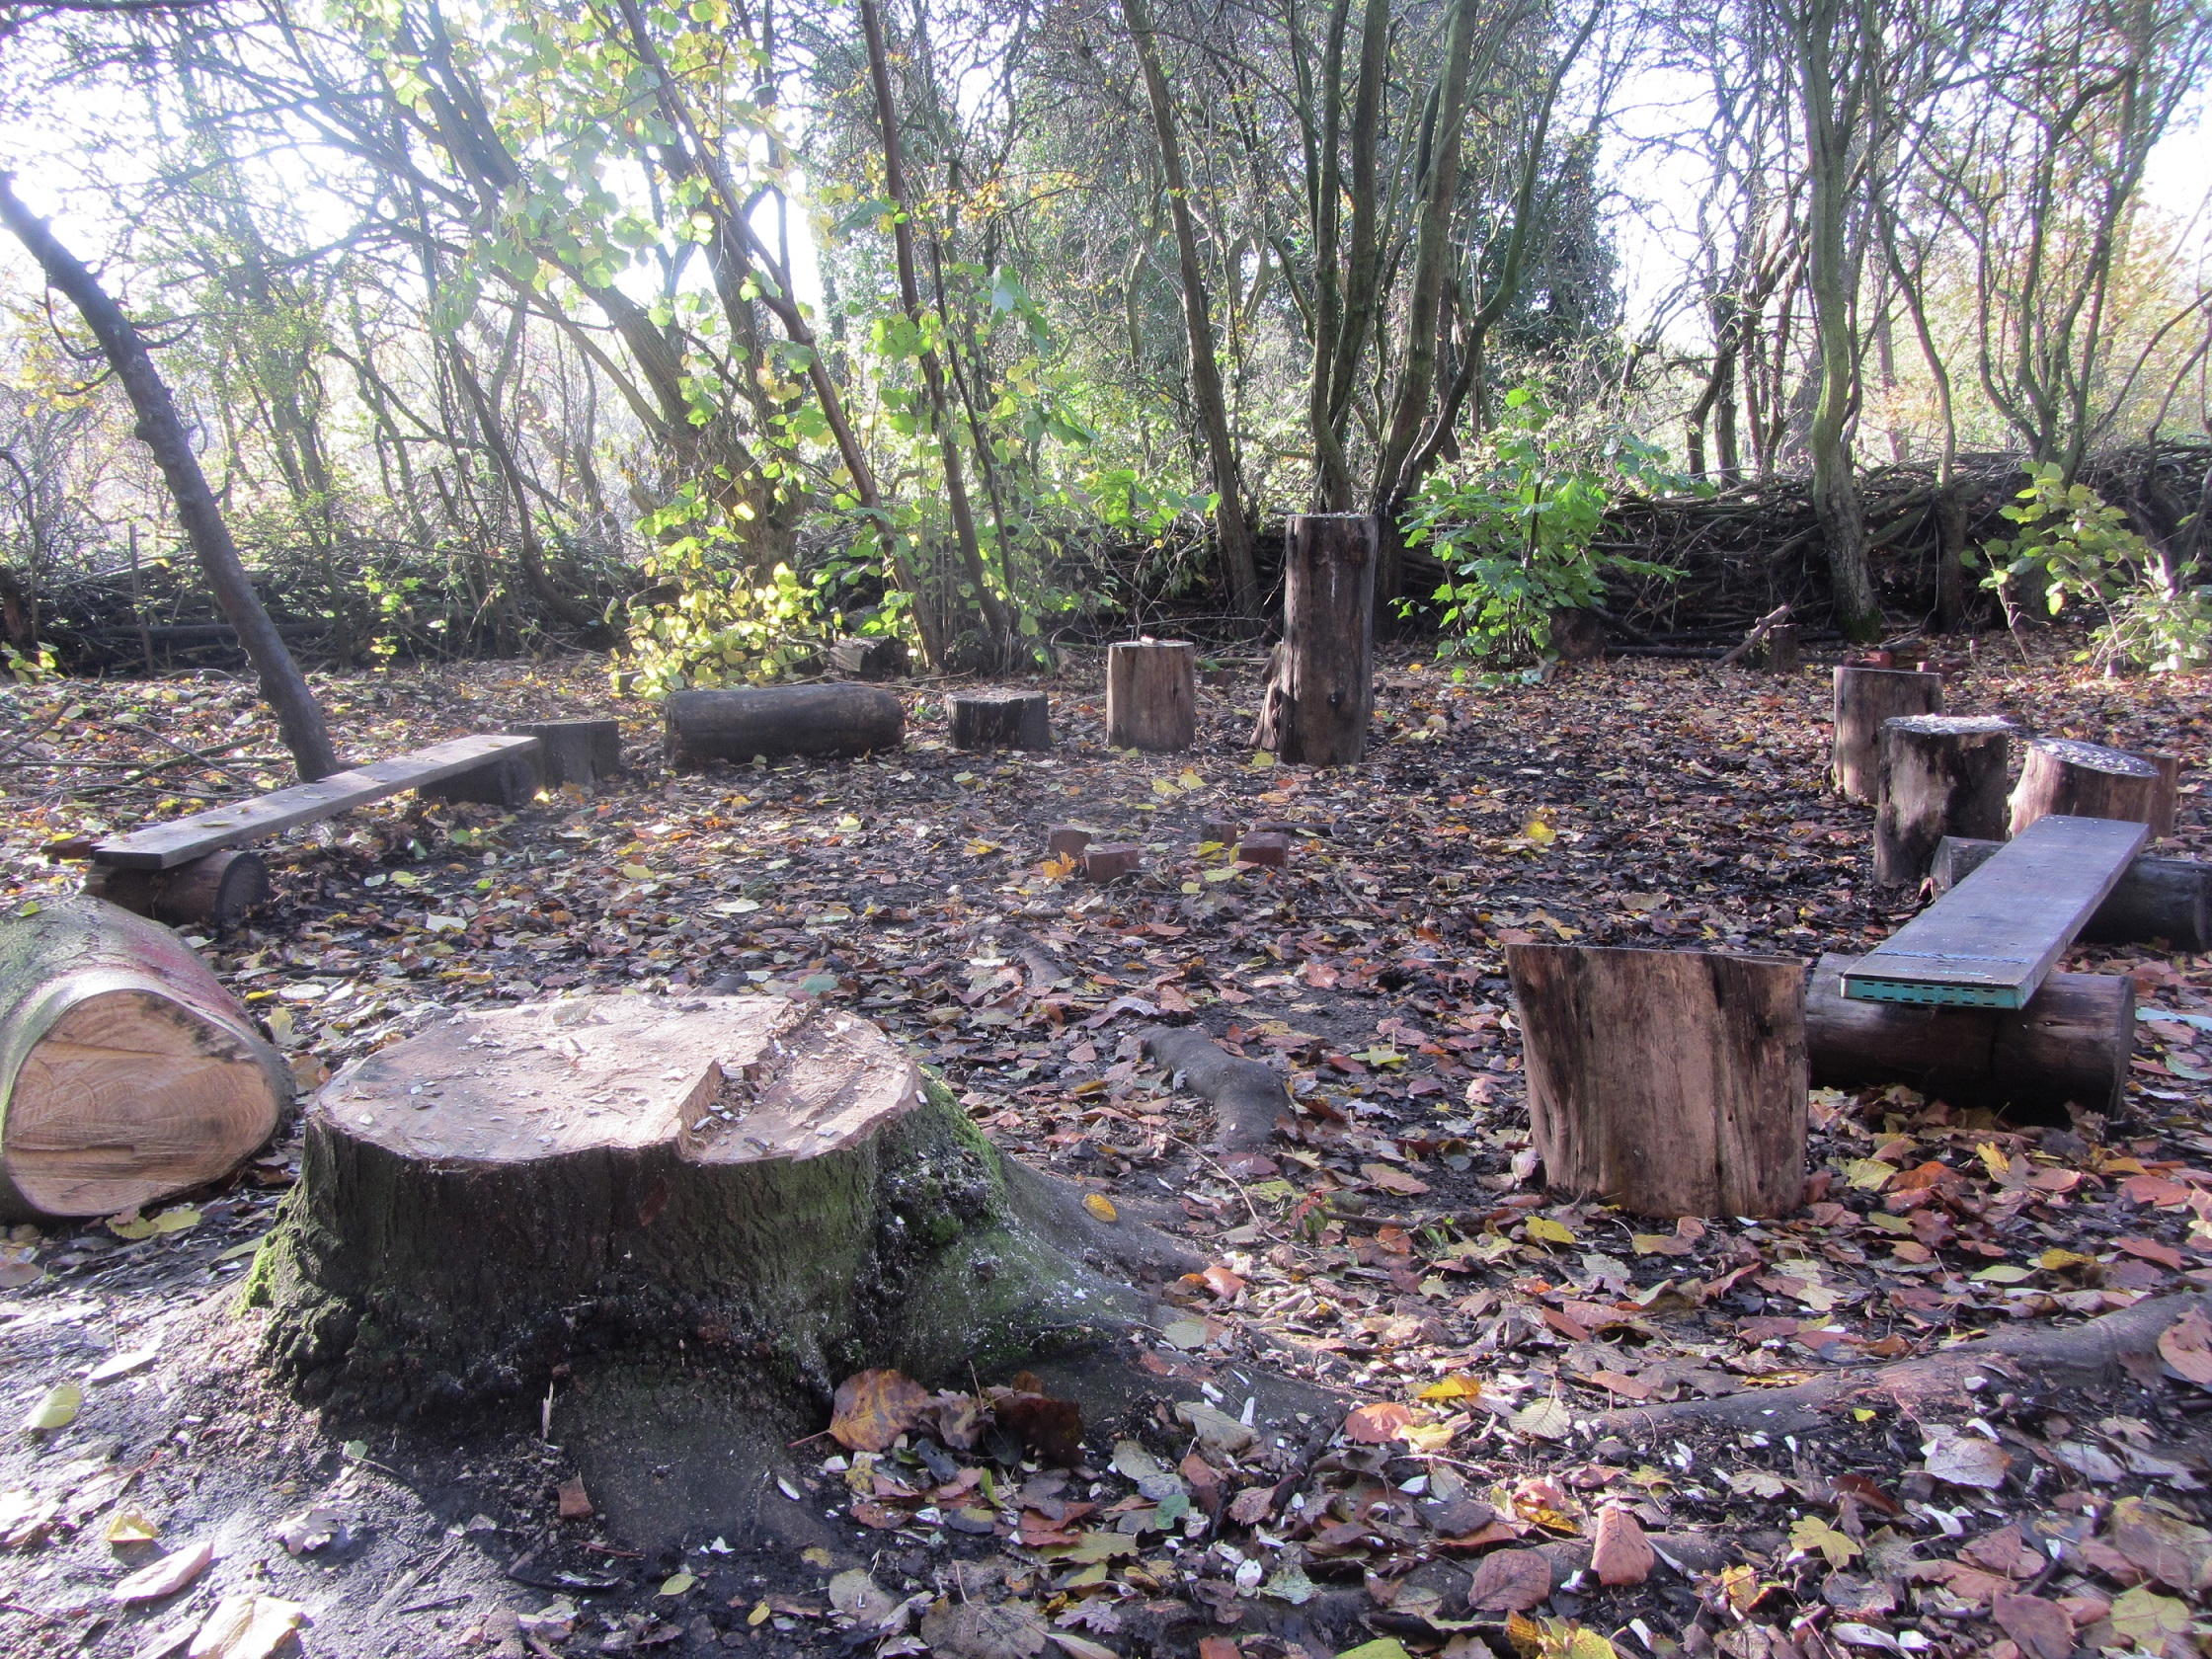 Outdoor classroom at Skelton Grange